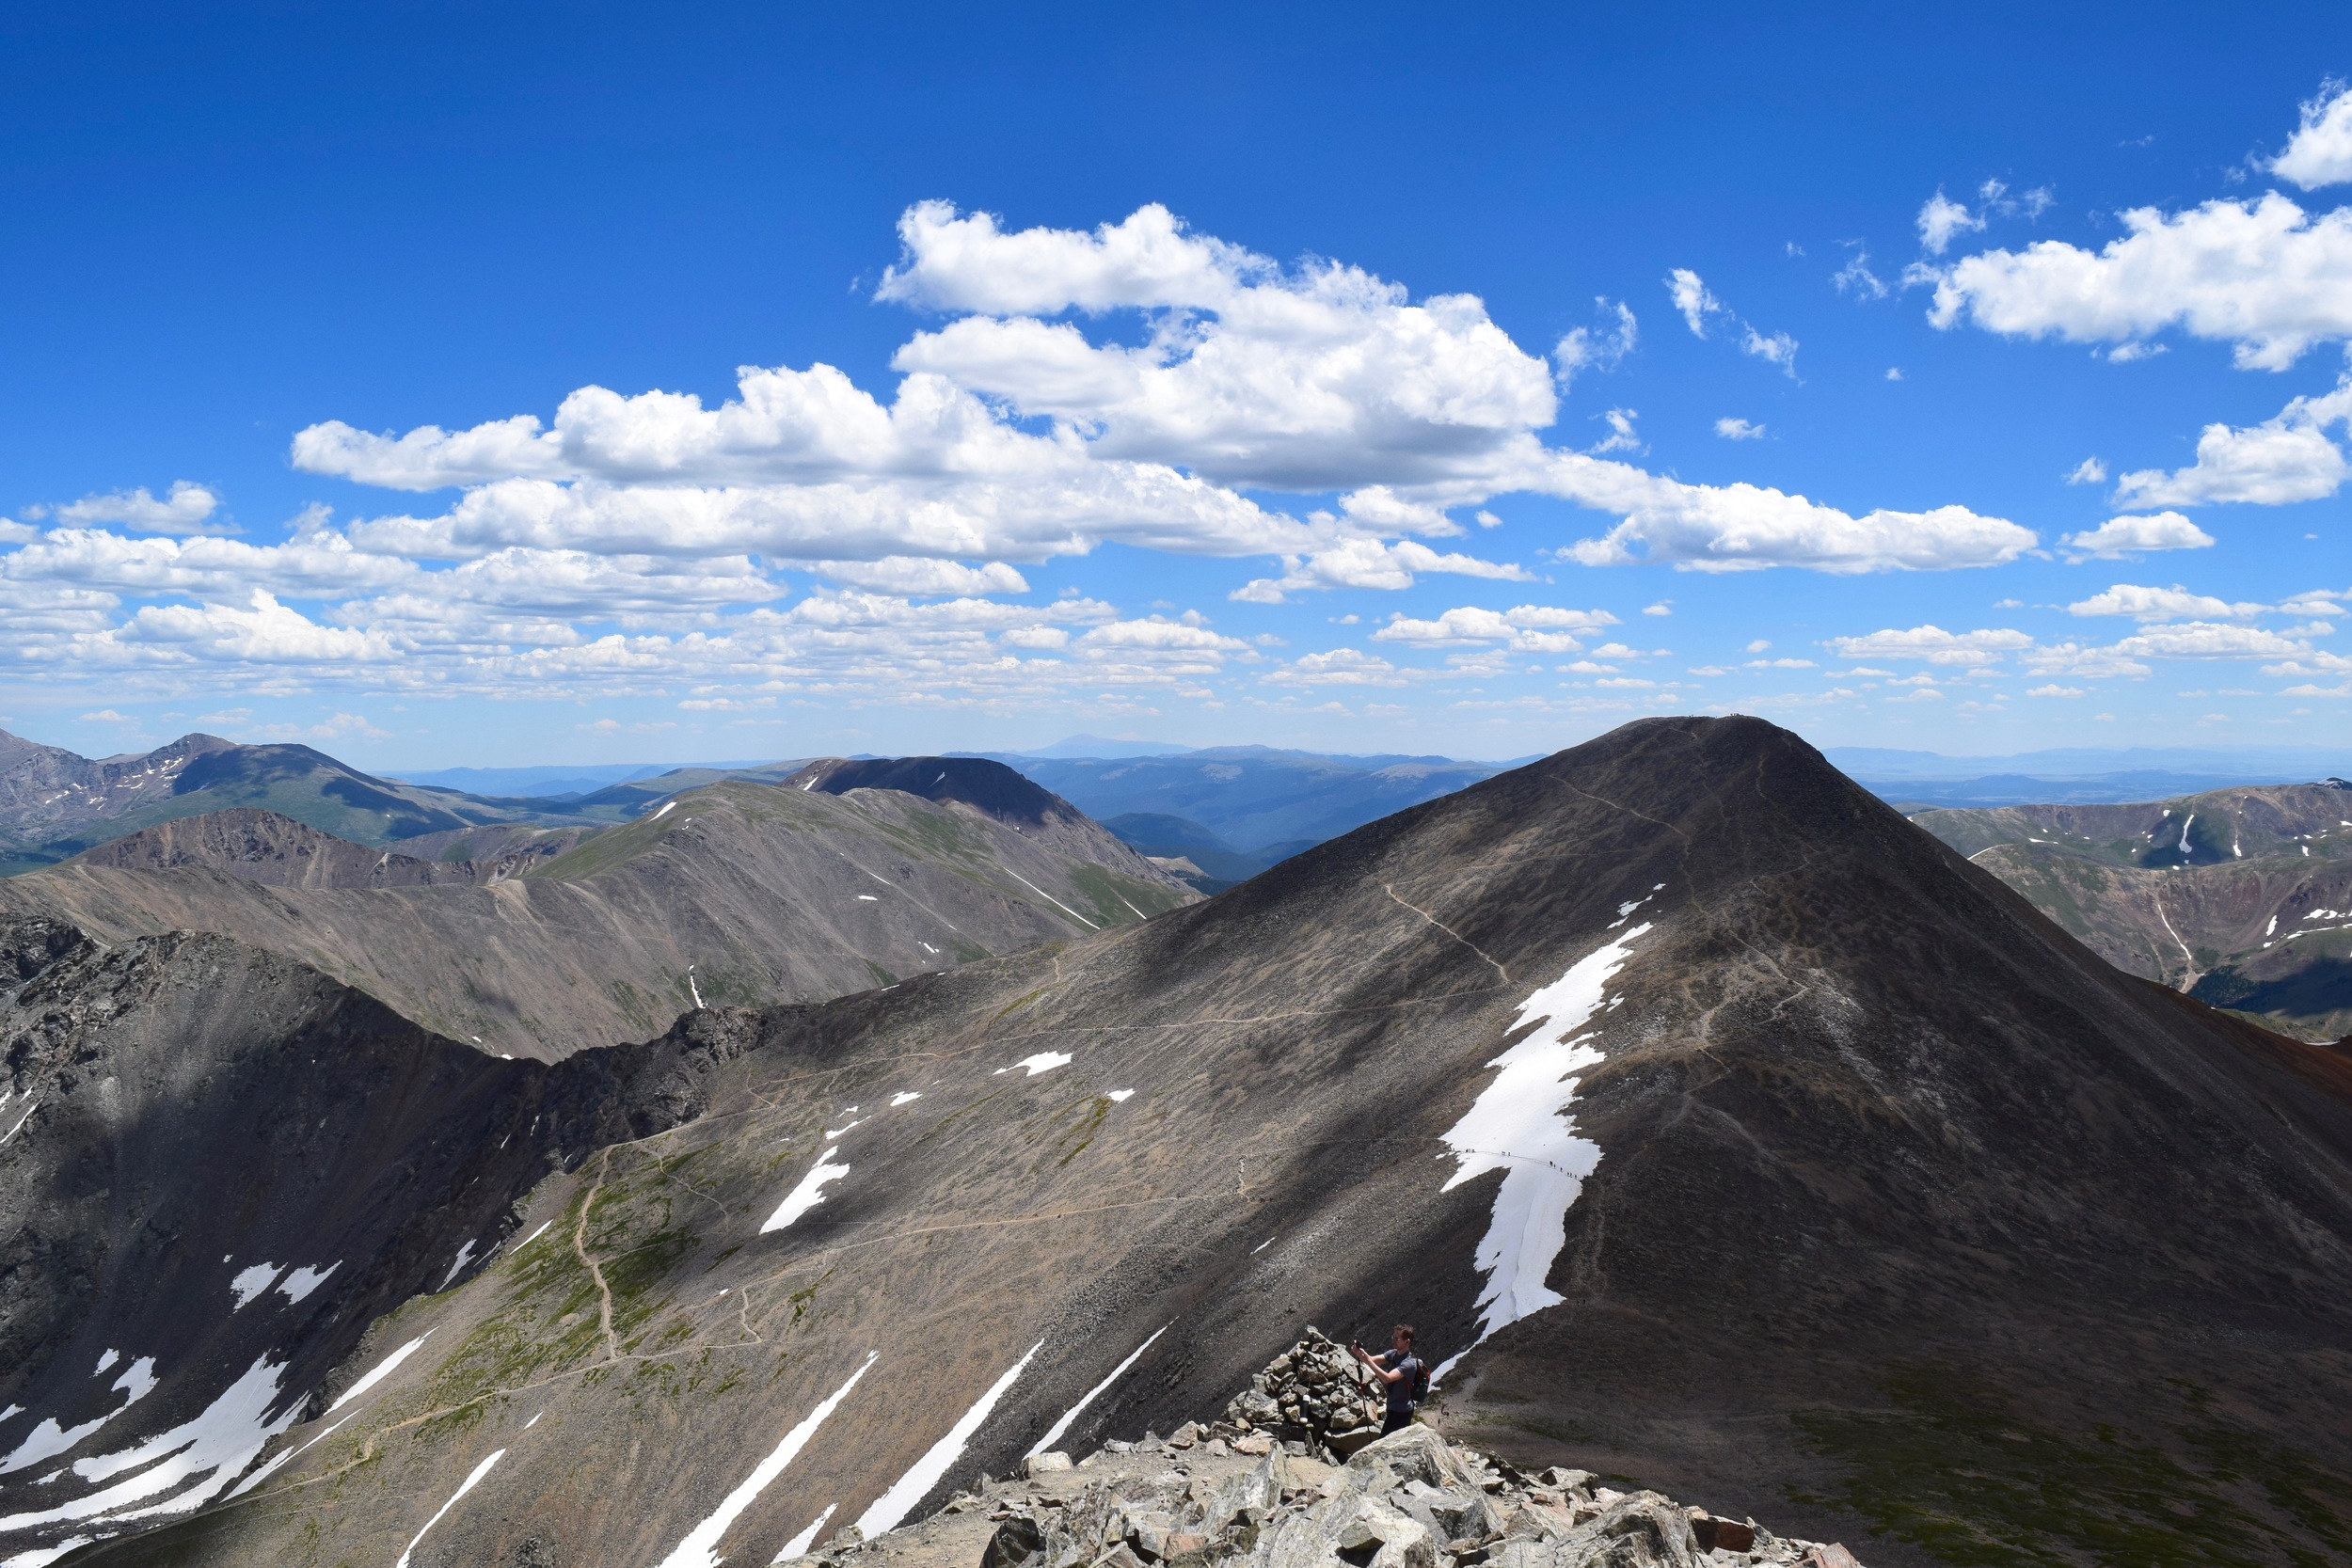 A shot of Grays Peak with the route pretty visible.